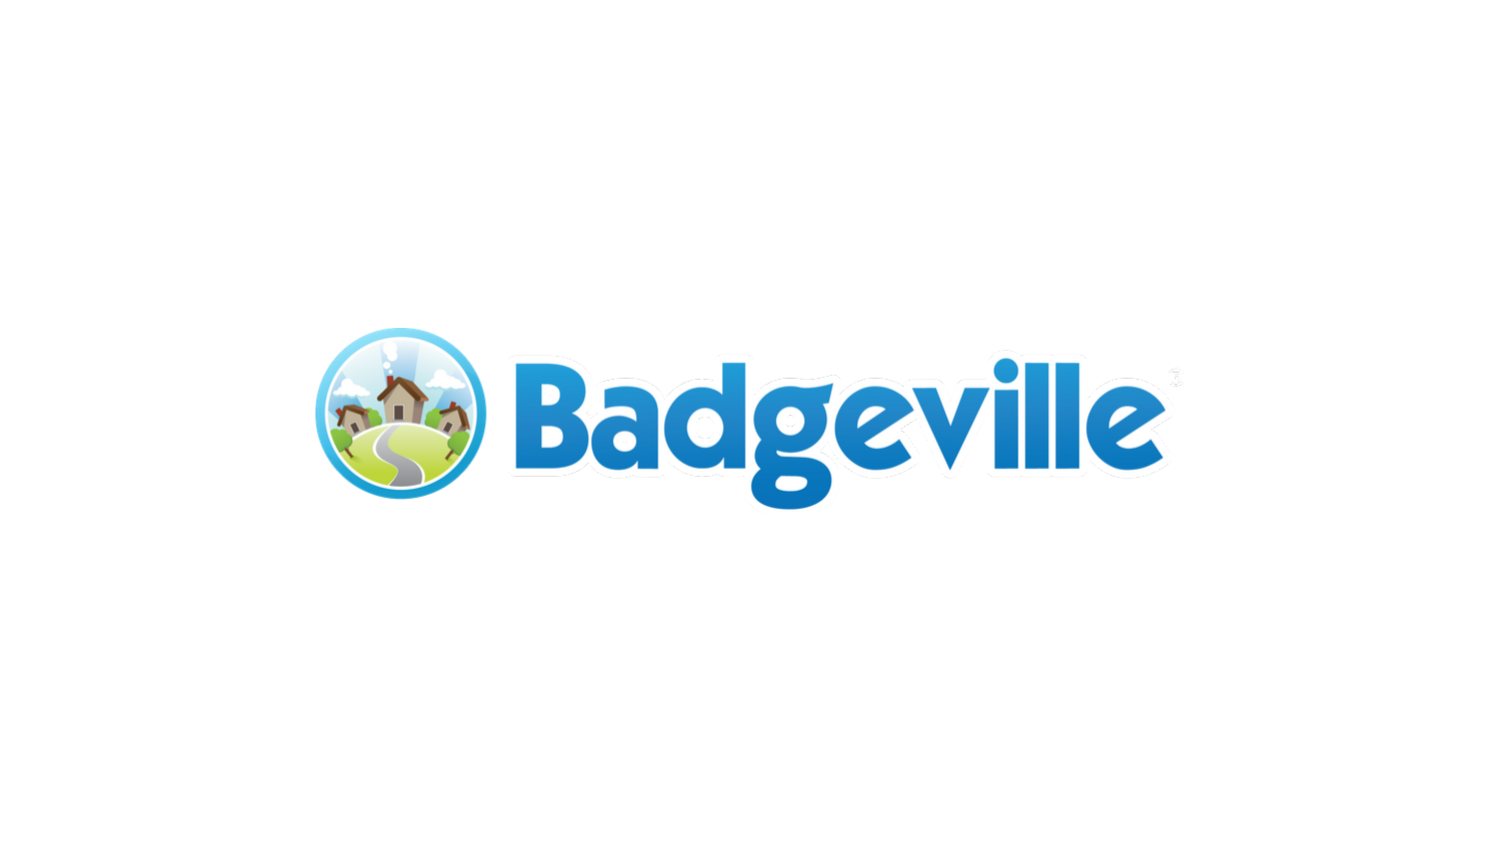 Better Engagement. - Badgeville is the leading business gamification company with a unique combination of in-app gamification, SaaS platform and big data analytics.